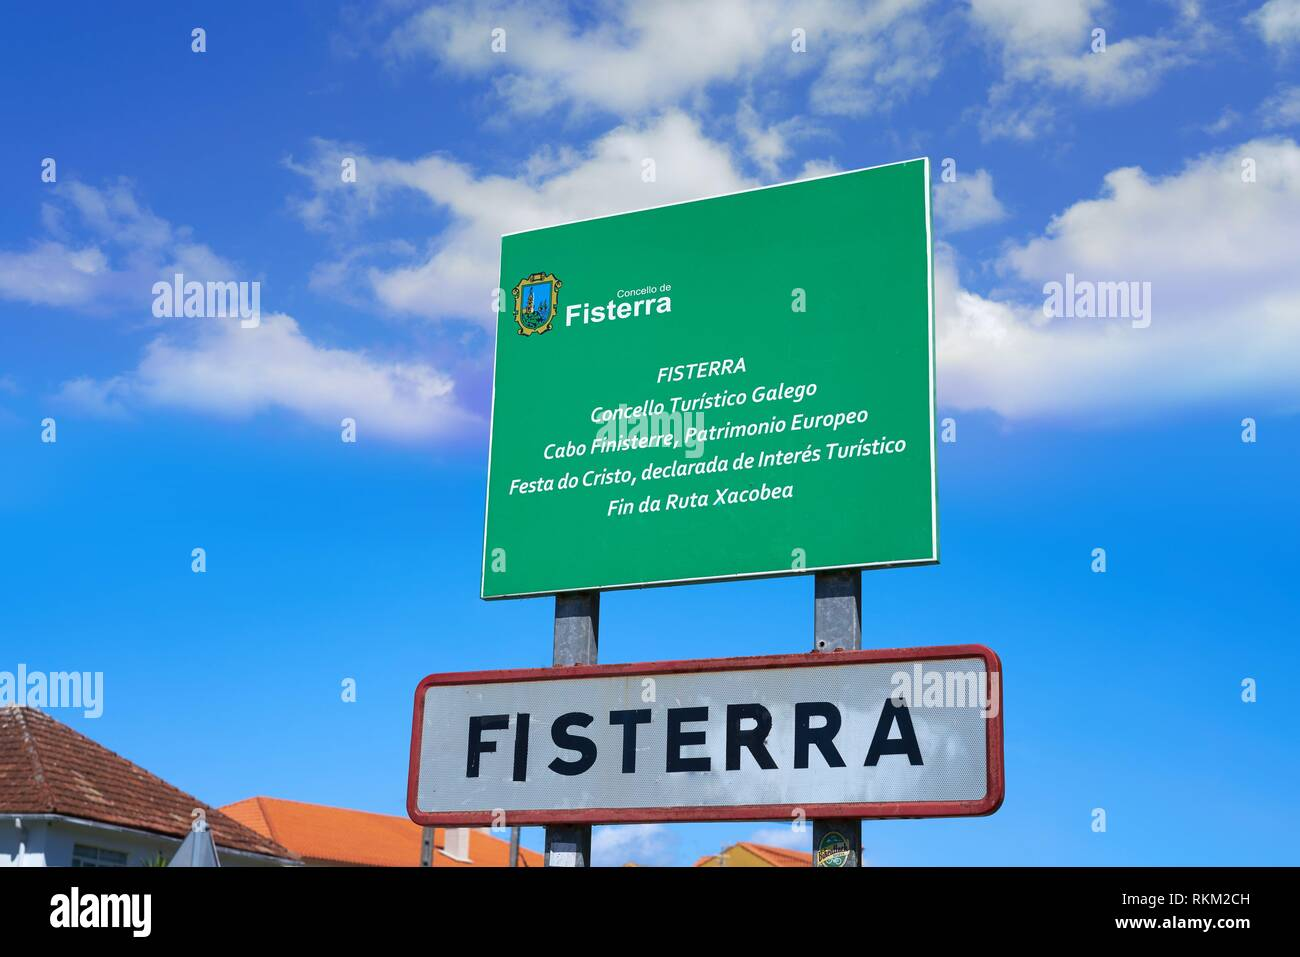 Camino Santiago To Finisterre Fisterra Or Finisterre Road Sign End Of Camino De Santiago Way Of